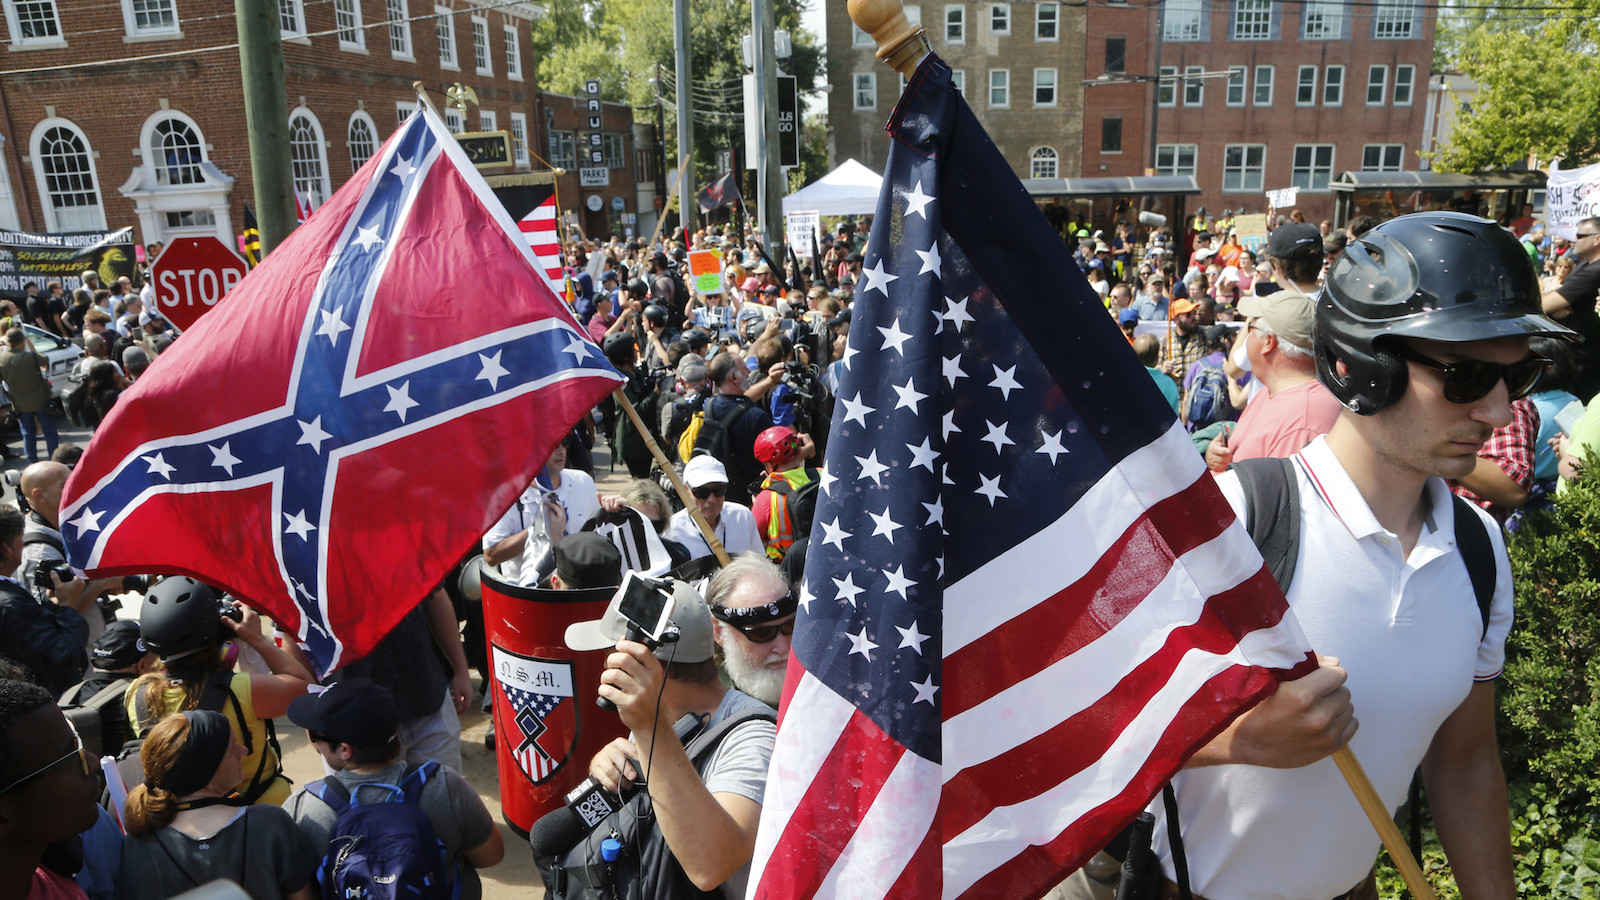 Alt Right demonstrators walk into Lee park surrounded by counter demonstrators in Charlottesville, Va., Saturday, Aug. 12, 2017.  (AP Photo/Steve Helber)